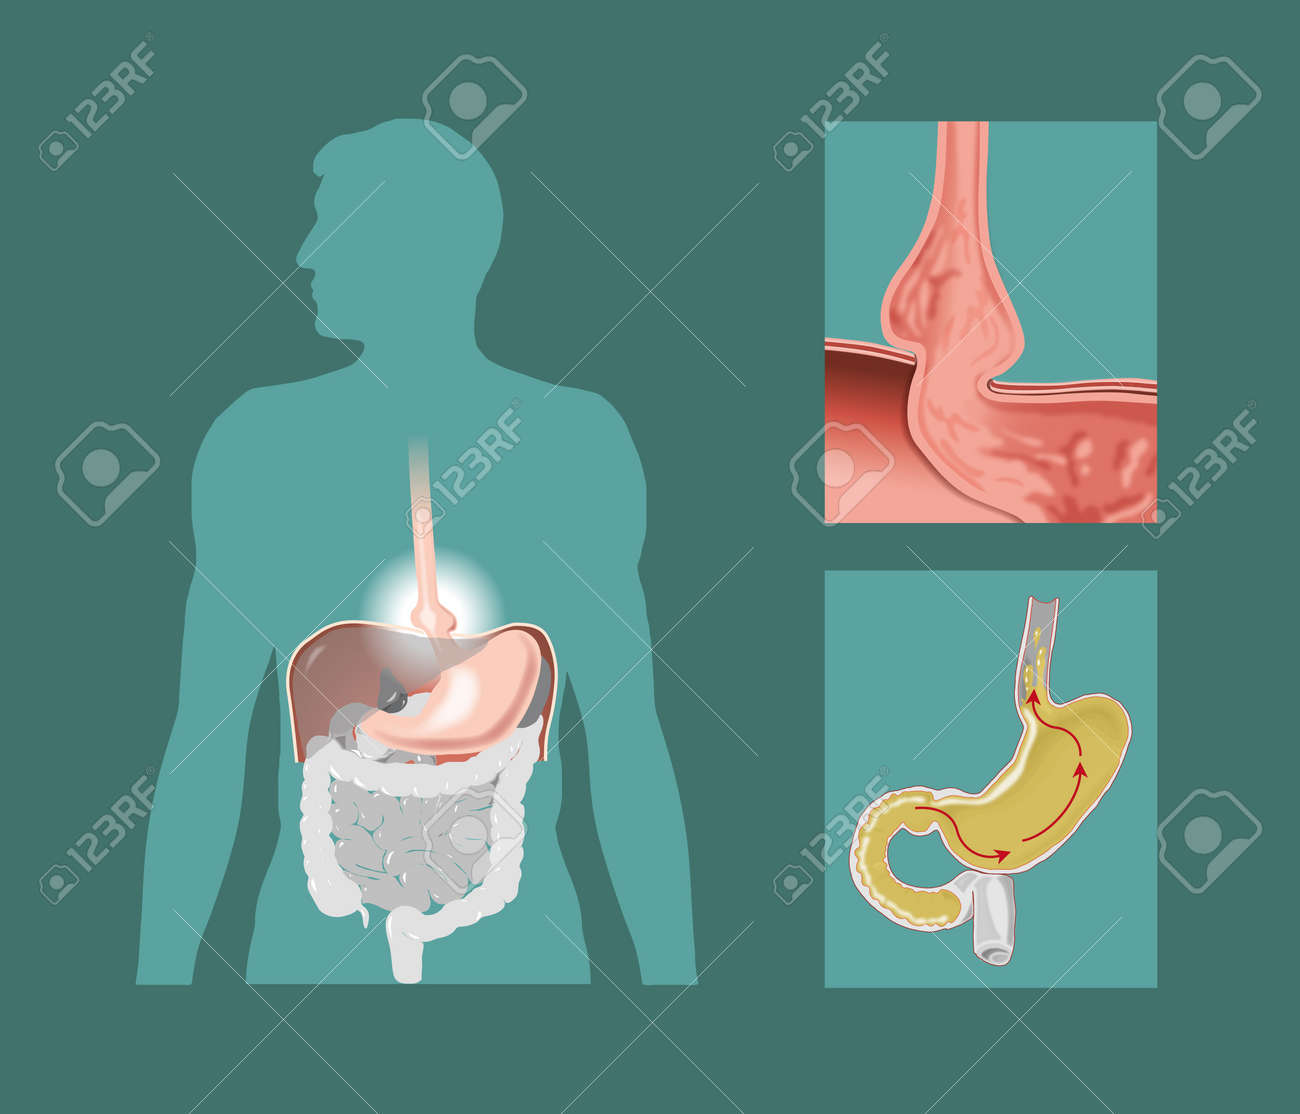 Schematic Drawing Of Hiatal Hernia Stock Photo, Picture And Royalty ...